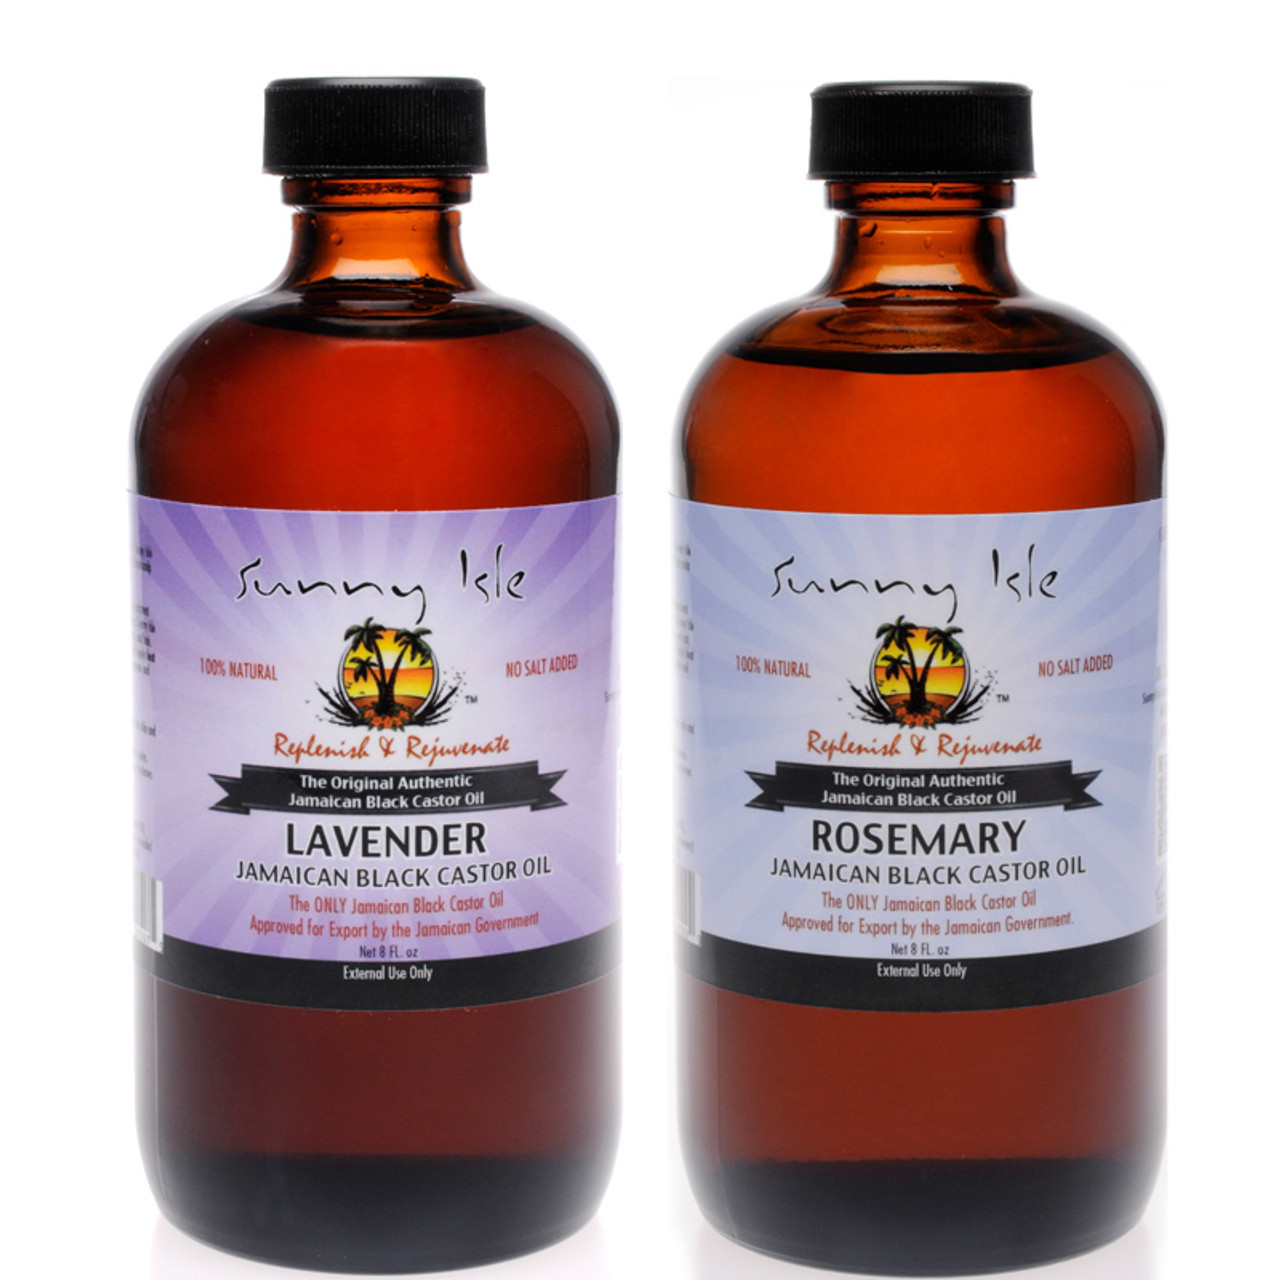 Isle Lavender Jamaican Black Castor Oil and Rosemary JBCO 8Oz 2-Pack